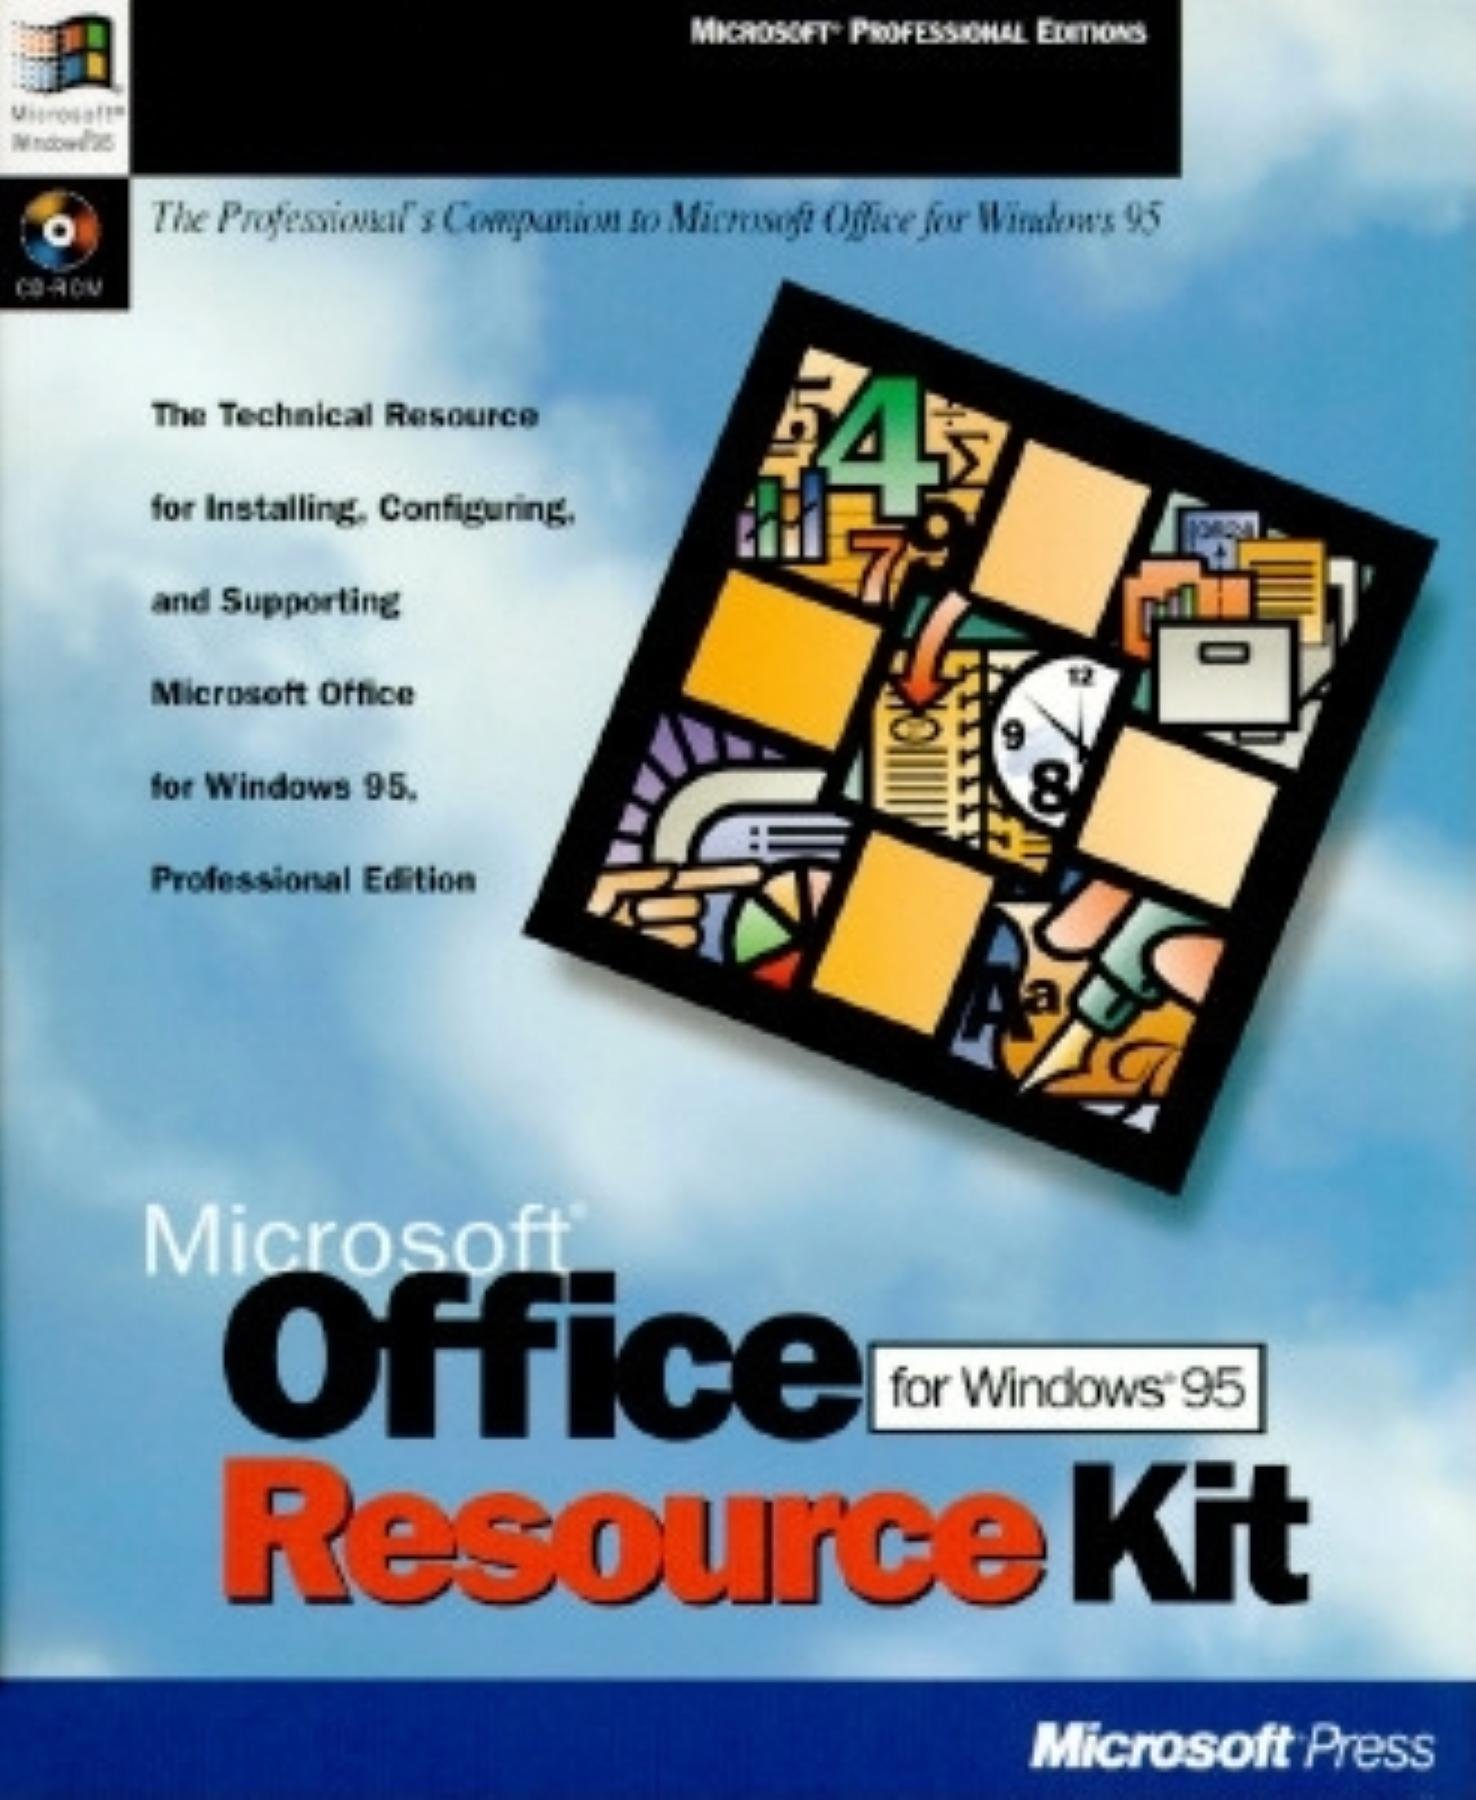 Buy Office 95 Resource Kit (Microsoft Professional Editions) Book